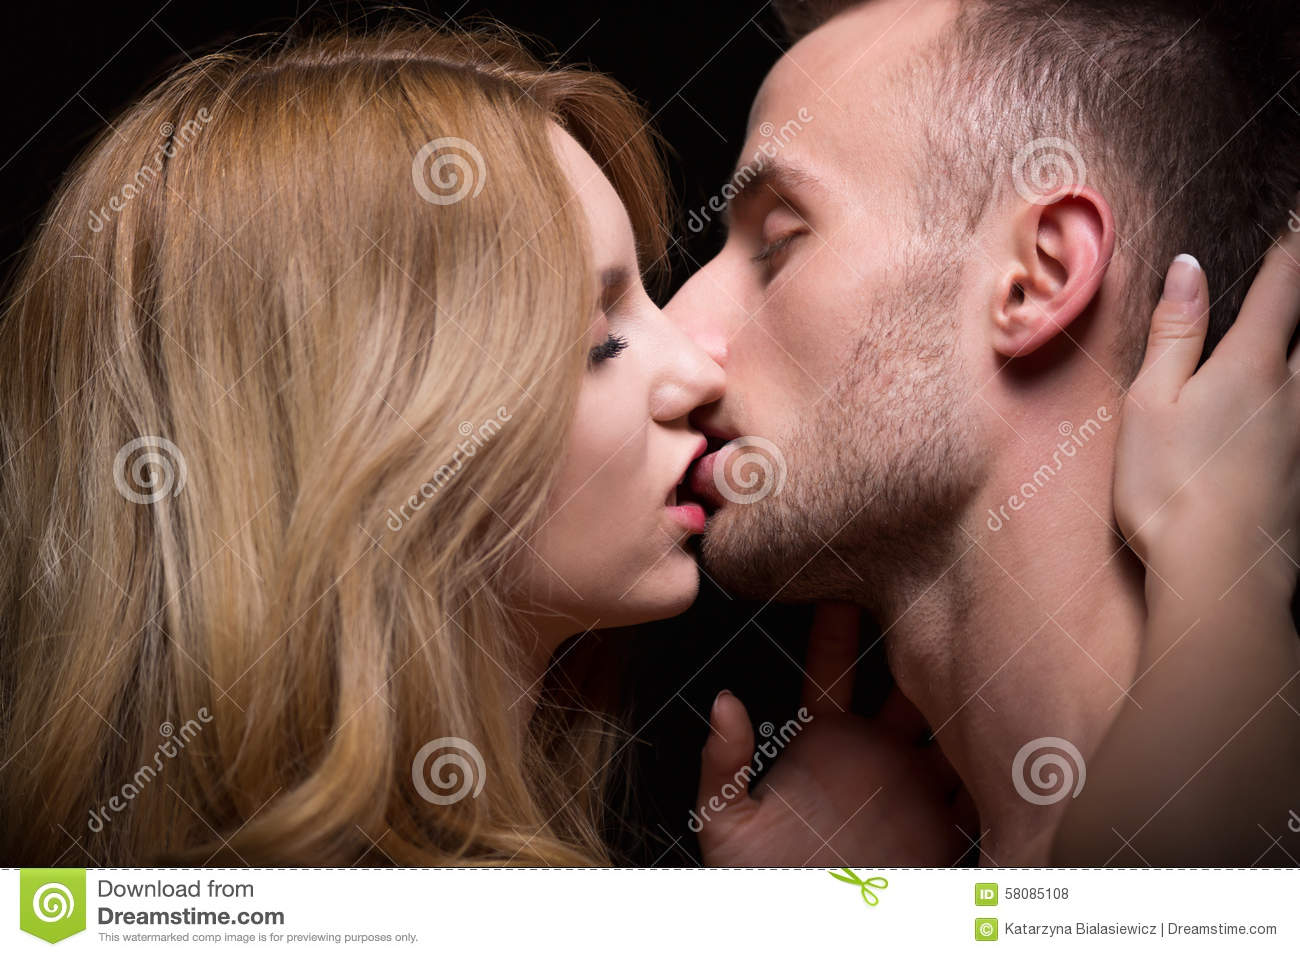 Naked couple lips kiss never impossible